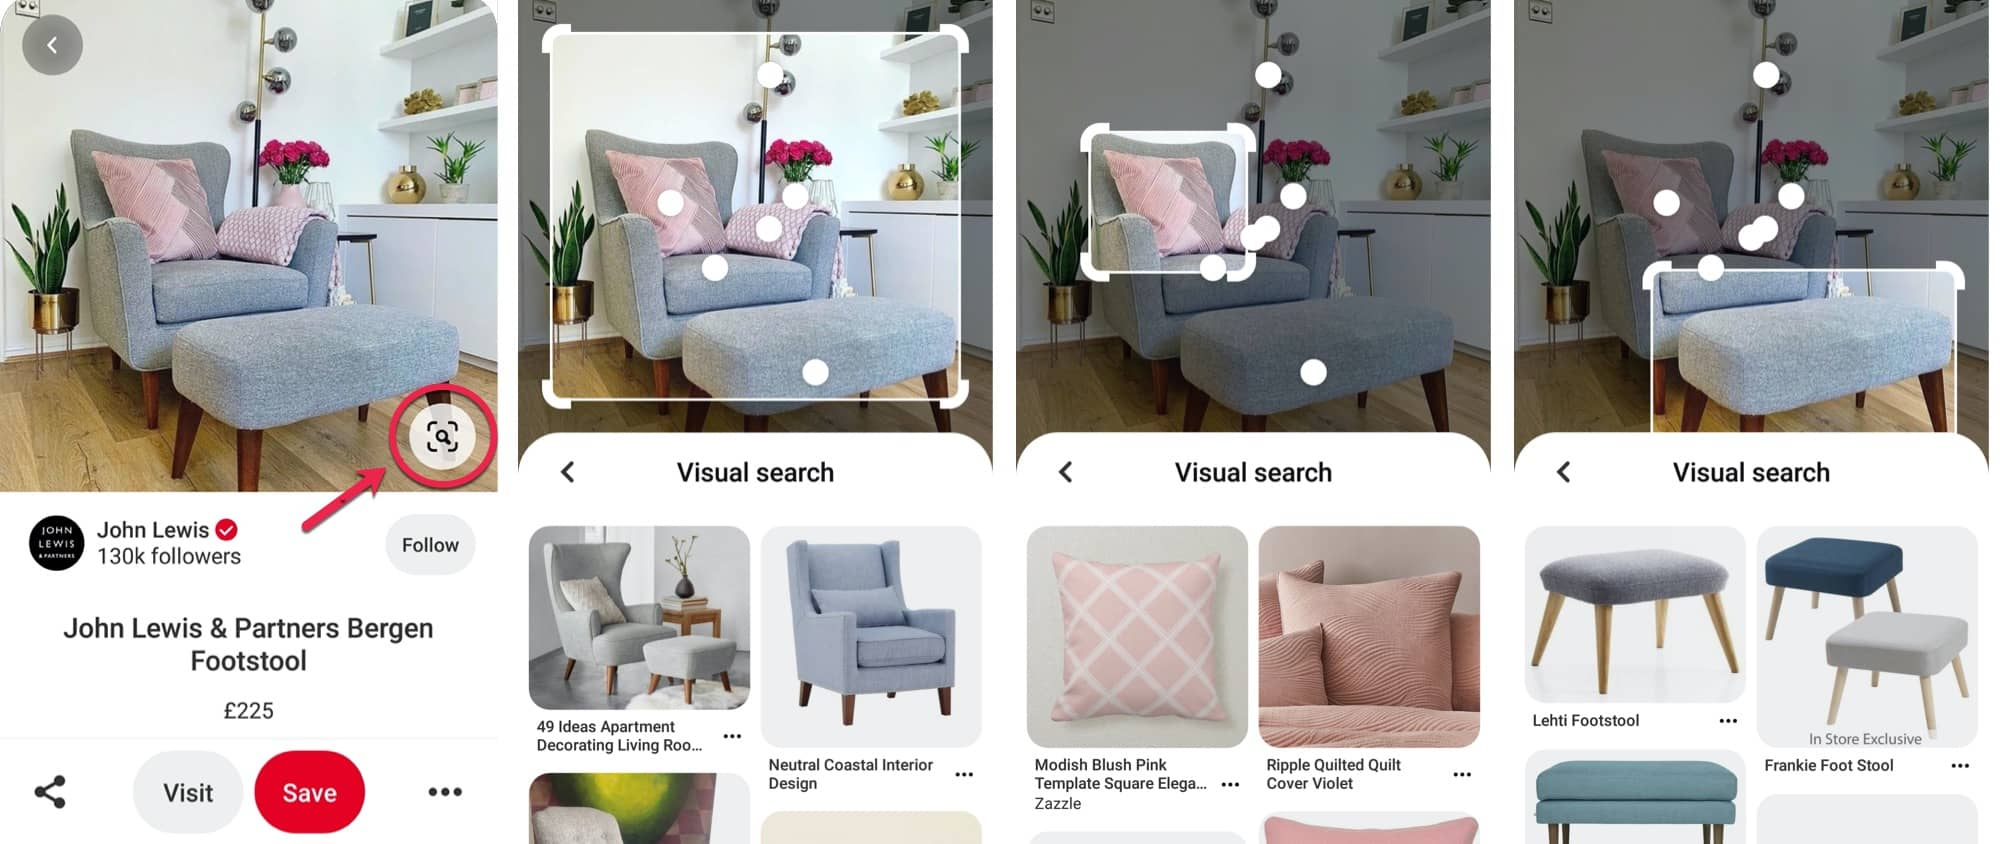 Image of visual search on Pinterest